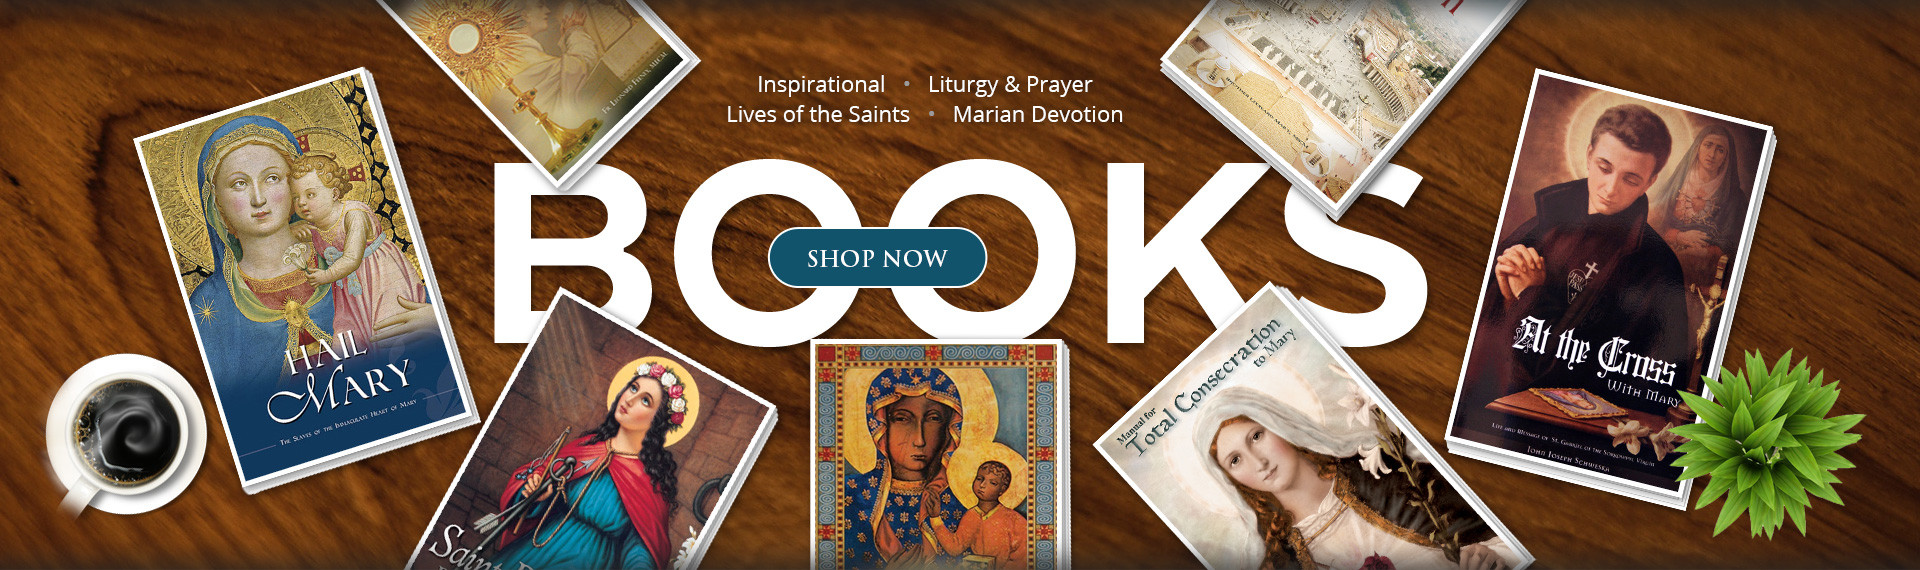 Catholic books banner. Click to go to our Books section.